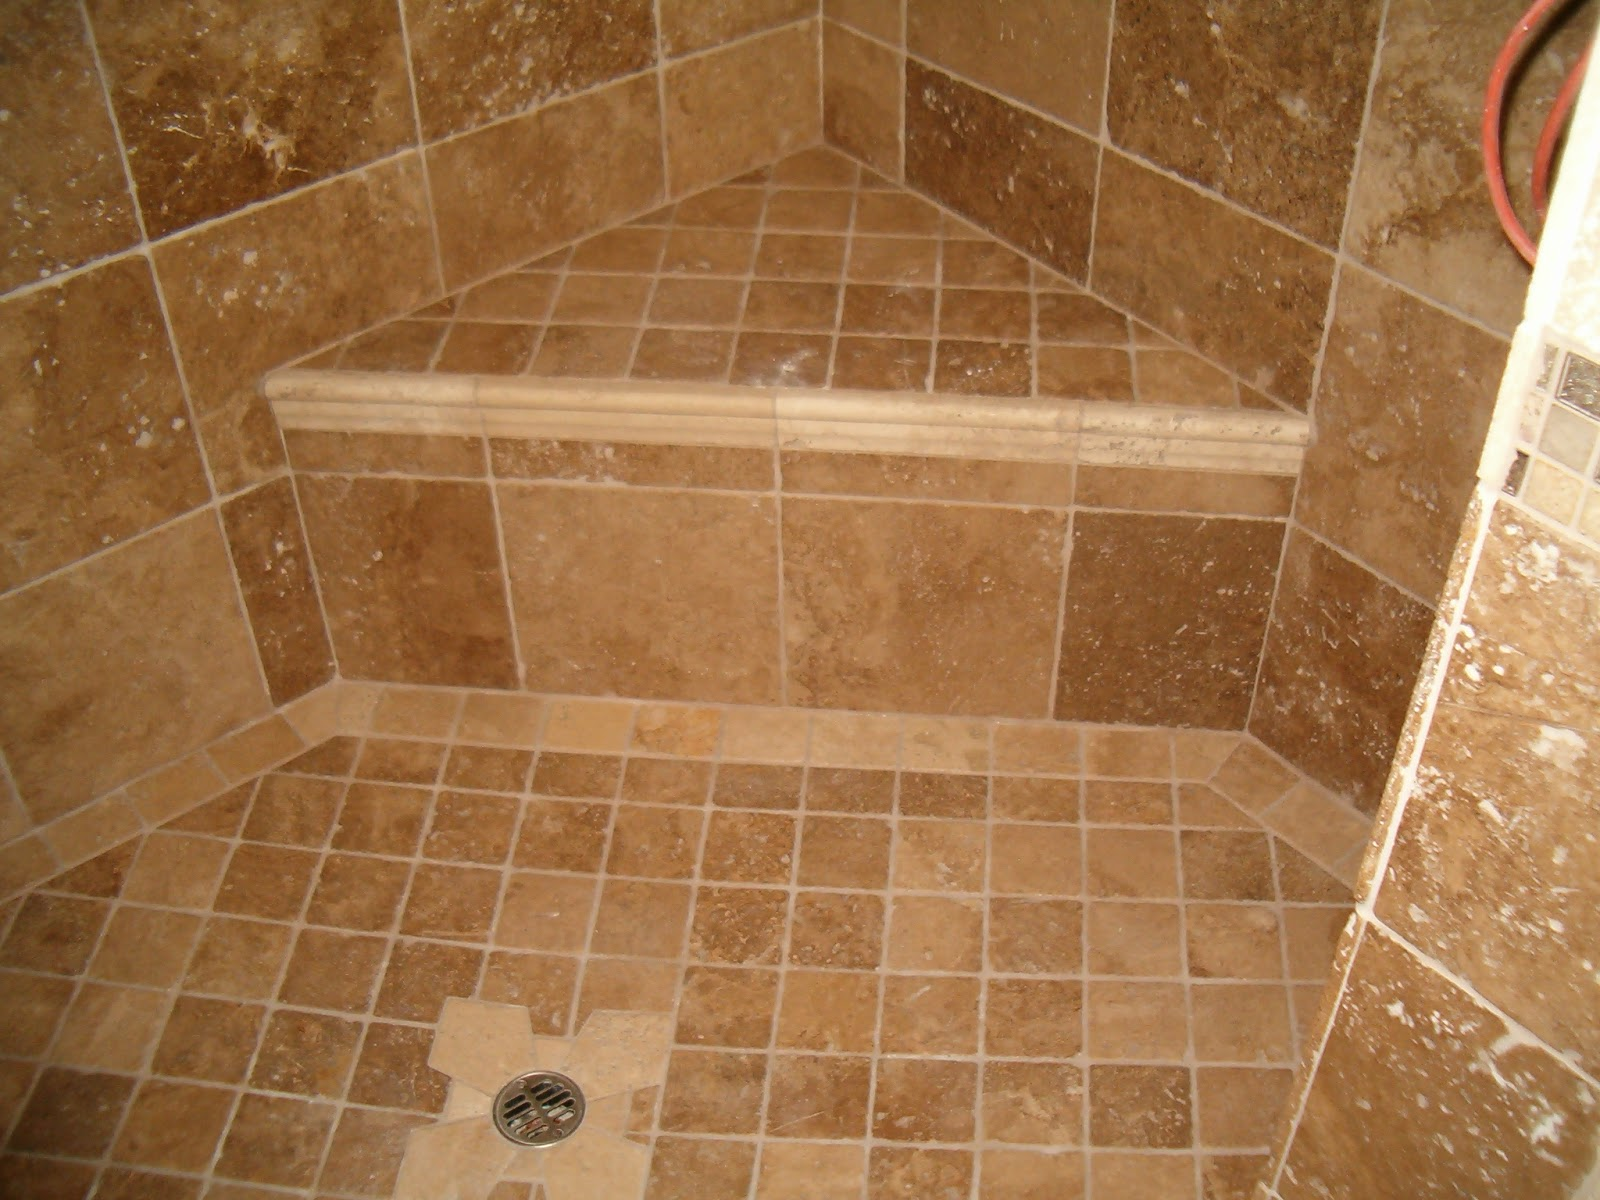 tiling bathroom shower photo - 1